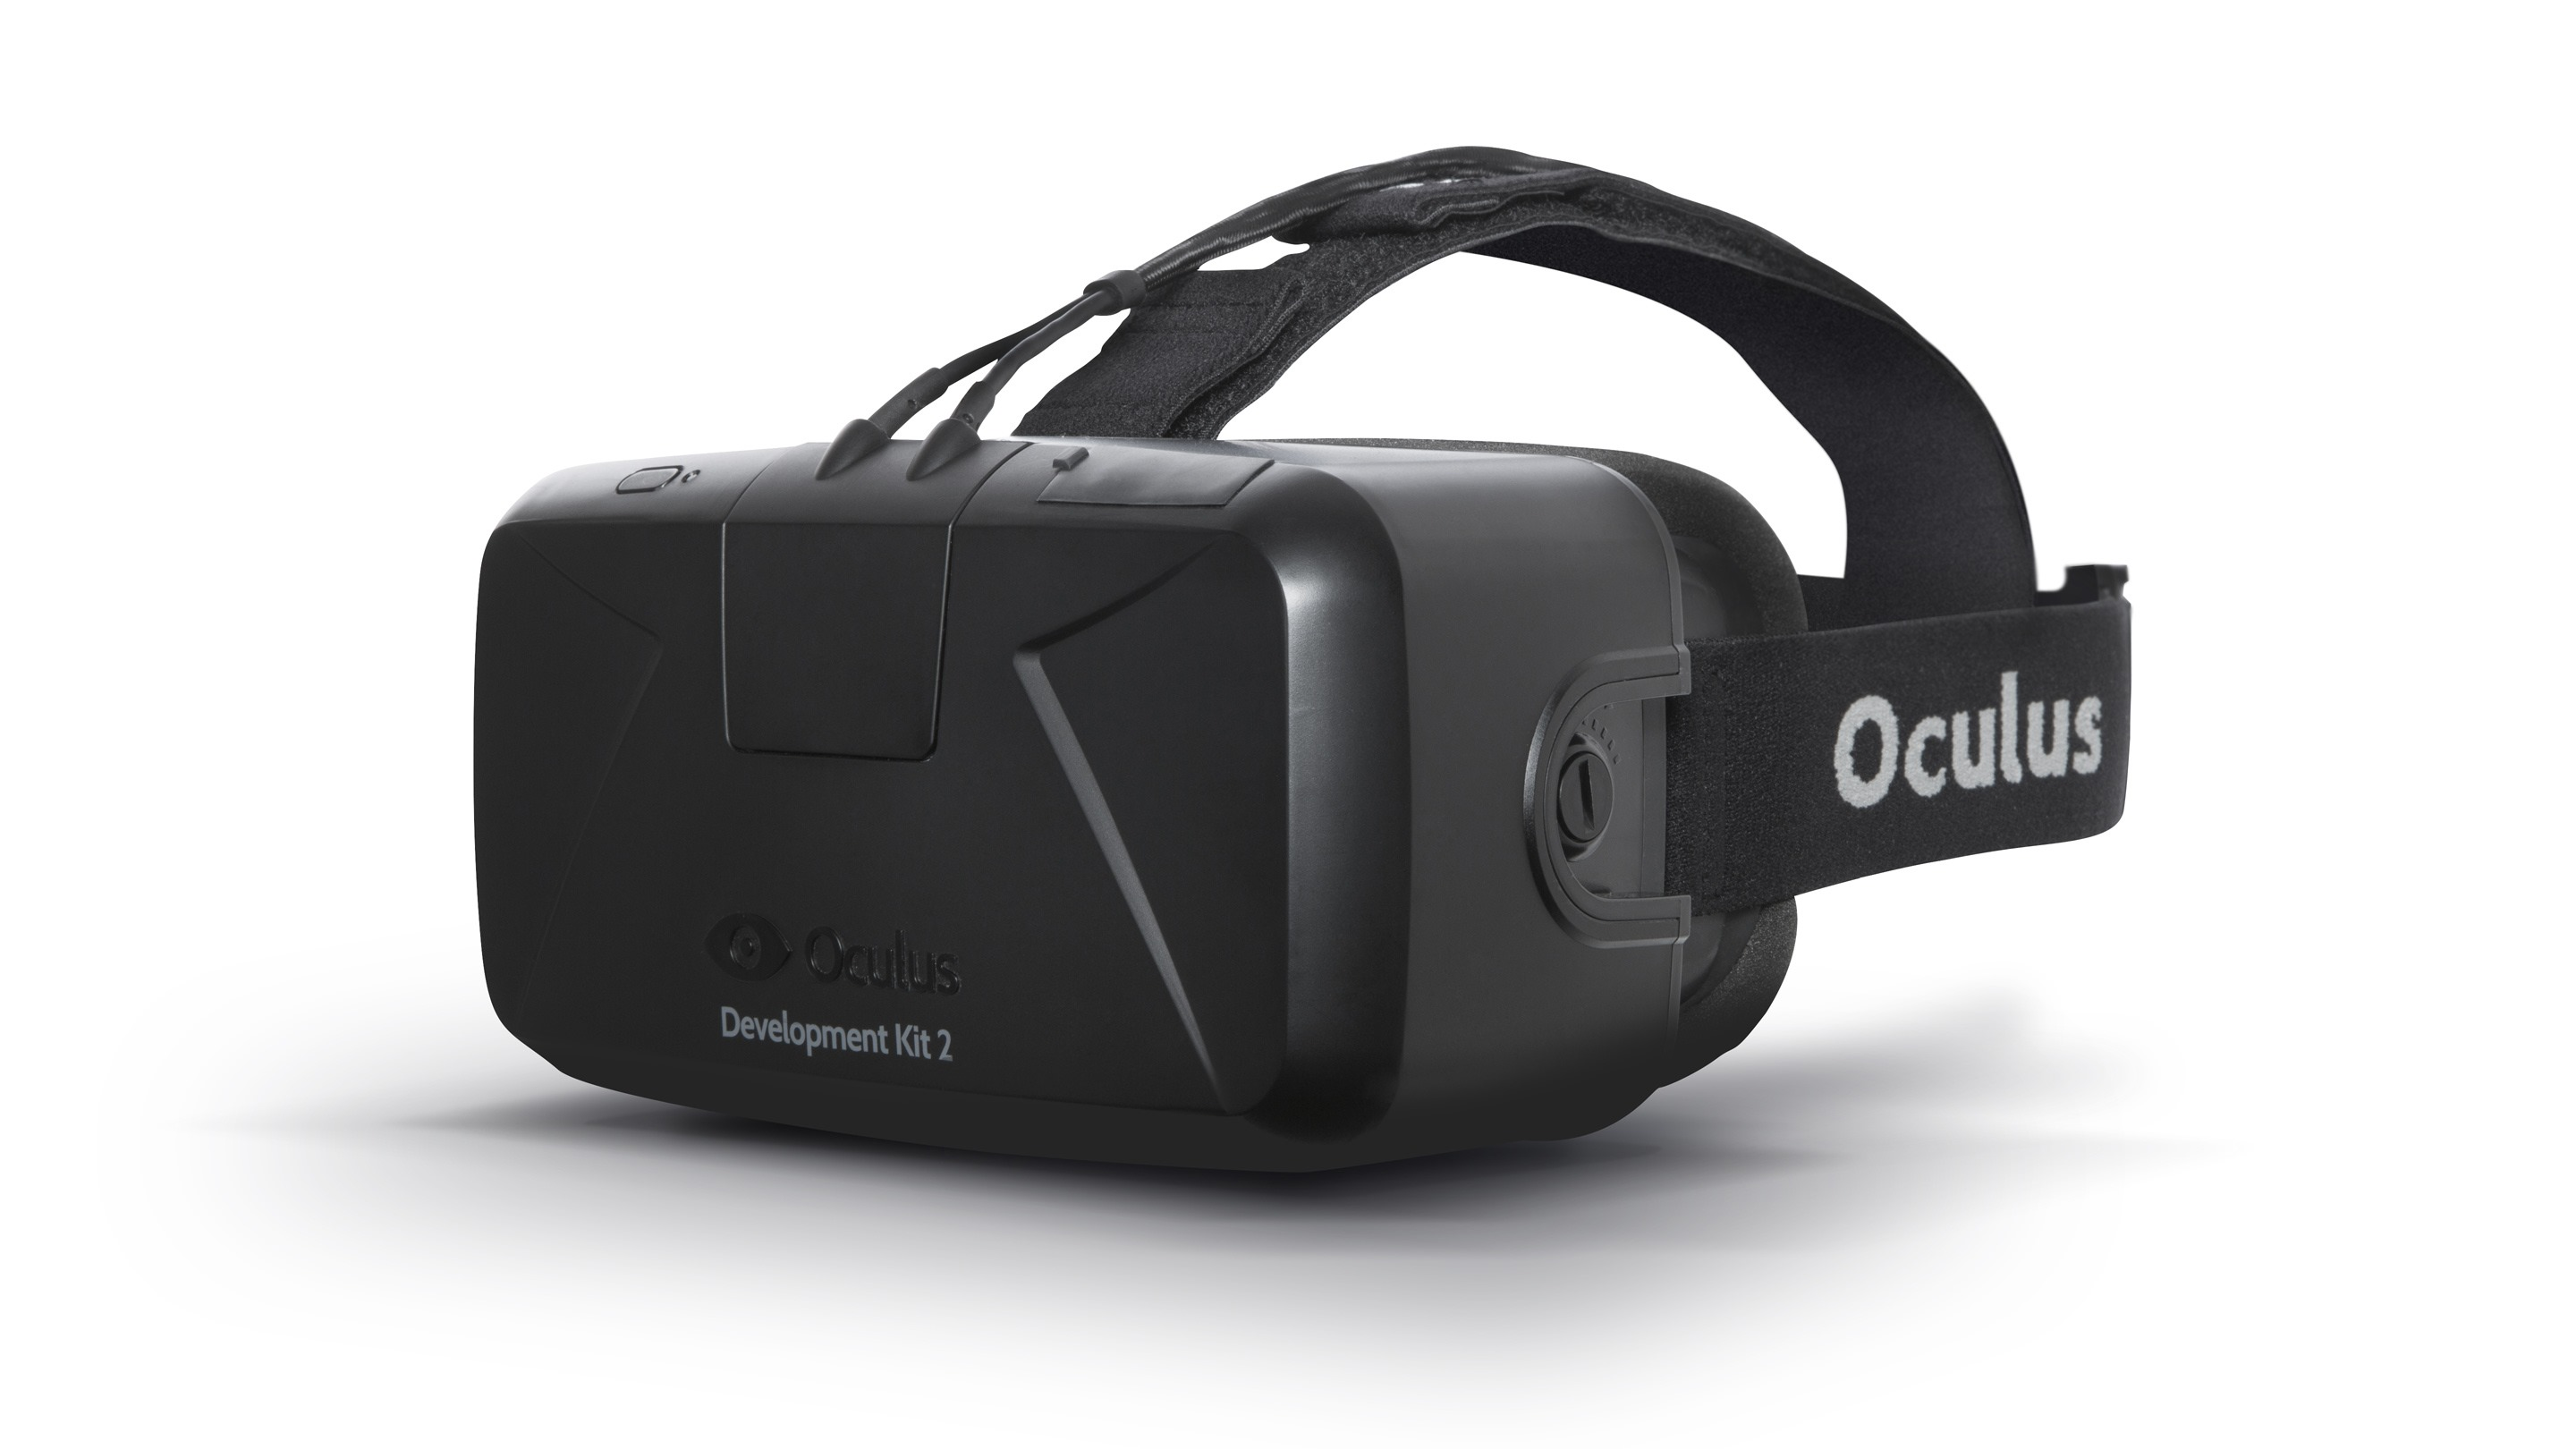 Oculus Rift DK2: The world is ready for virtual reality - Oculus PNG